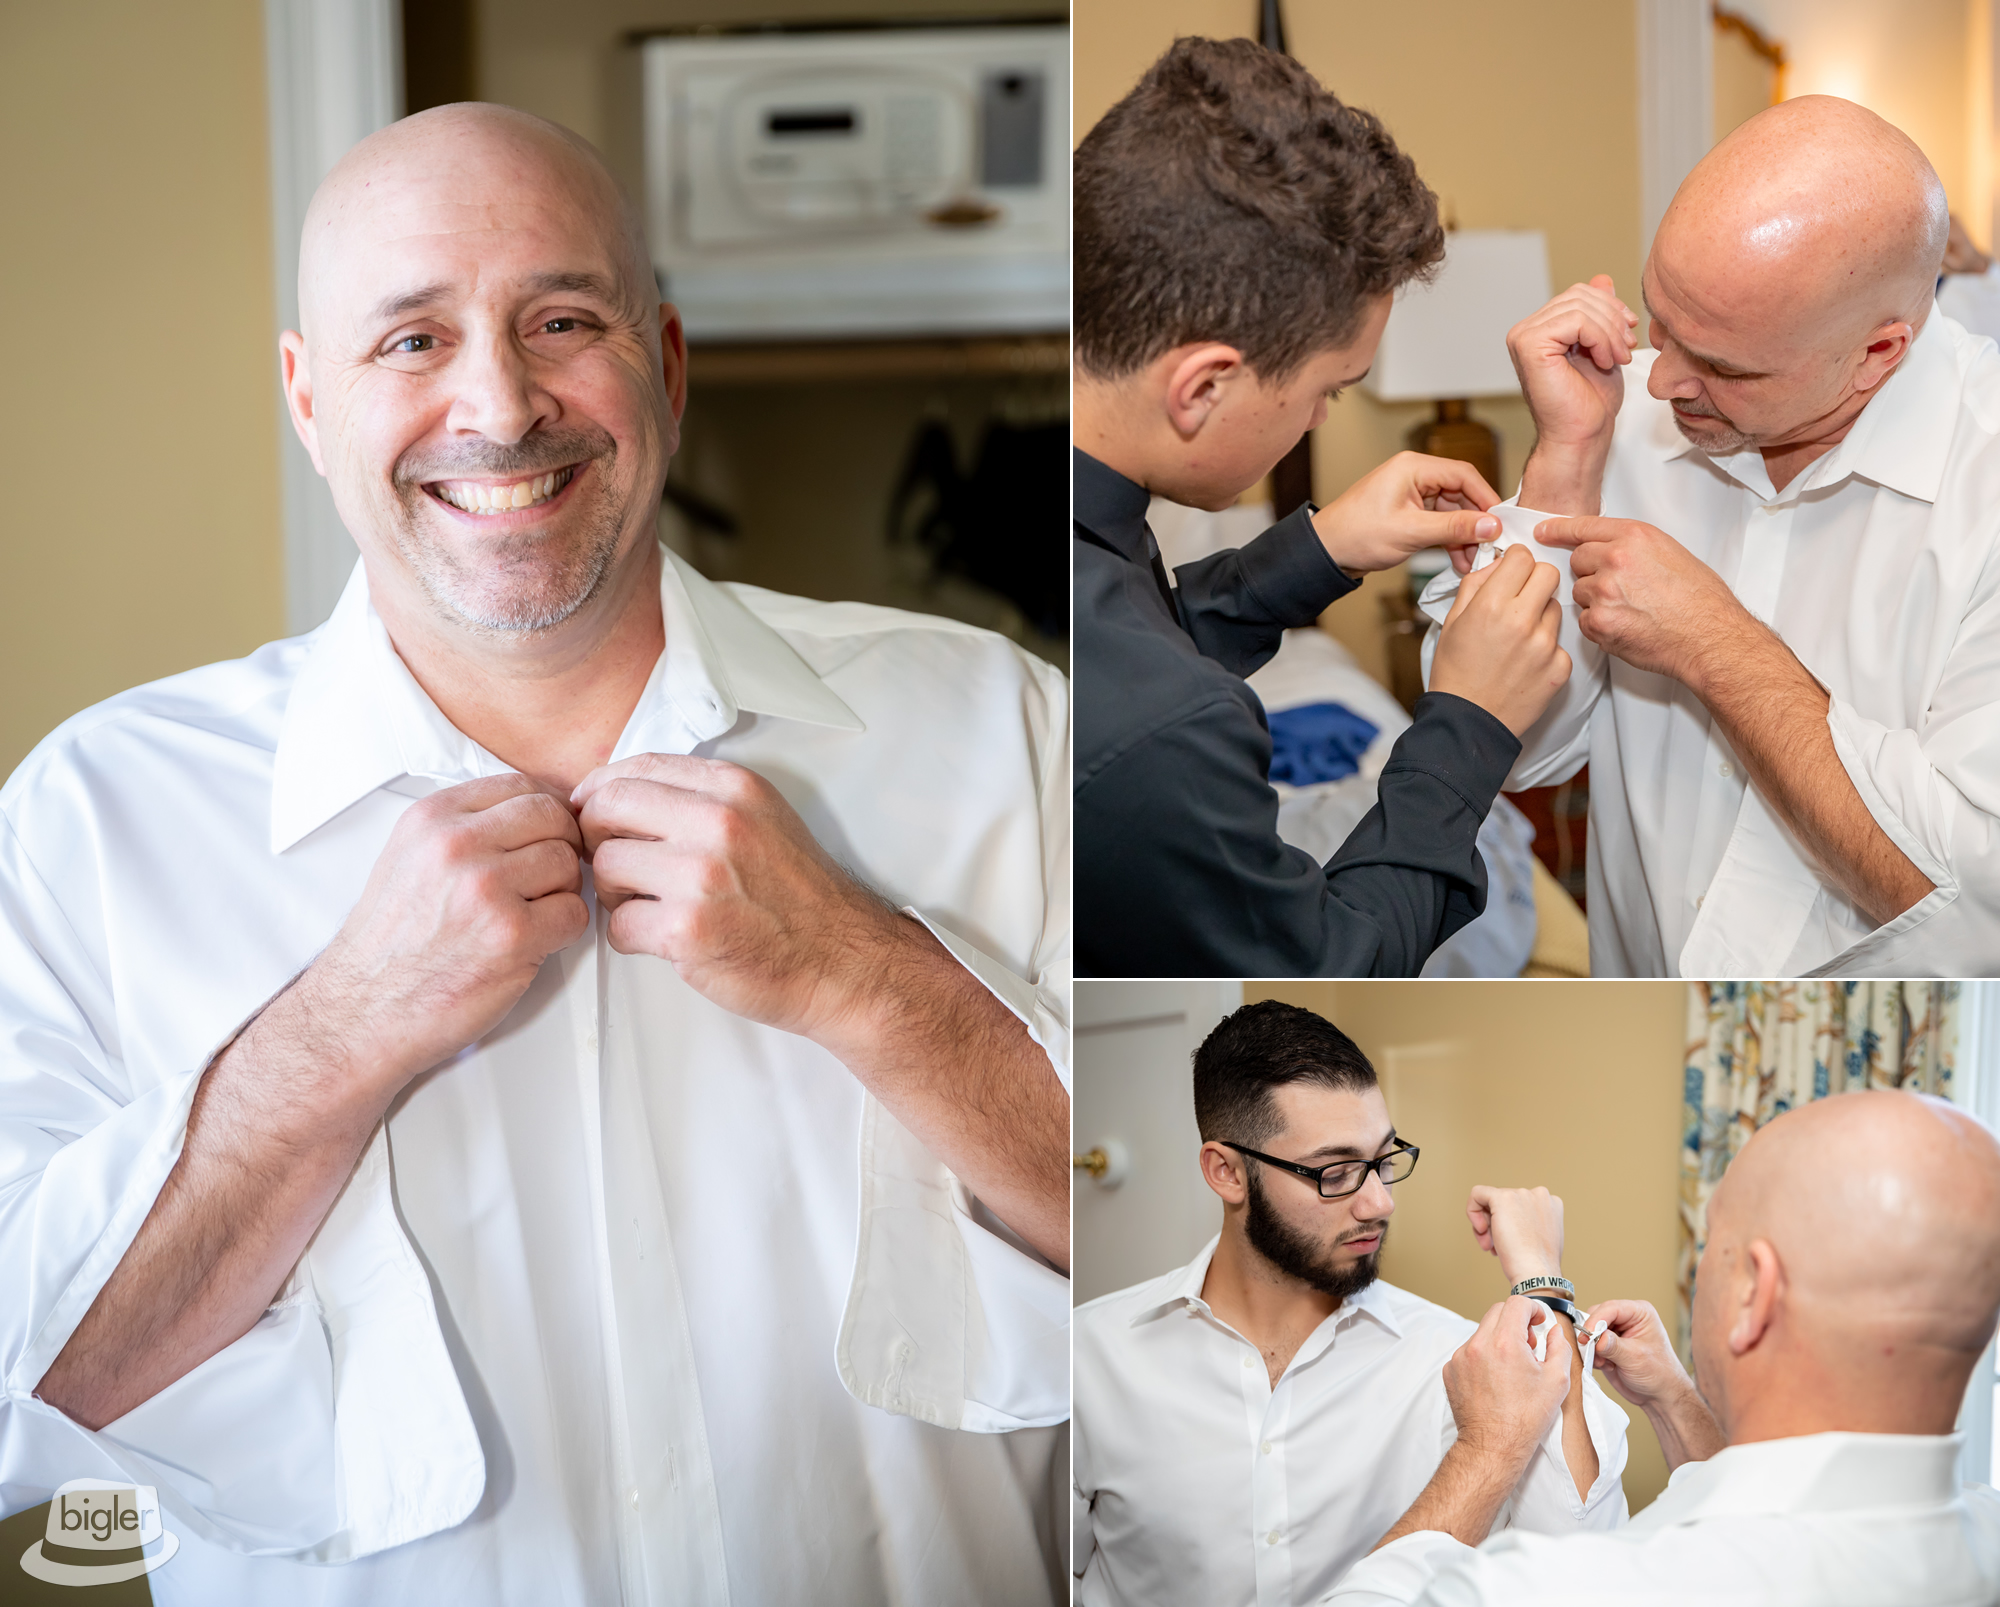 20181123_-_07_-_Melissa_and_Richard_Otesaga_Wedding_Photos